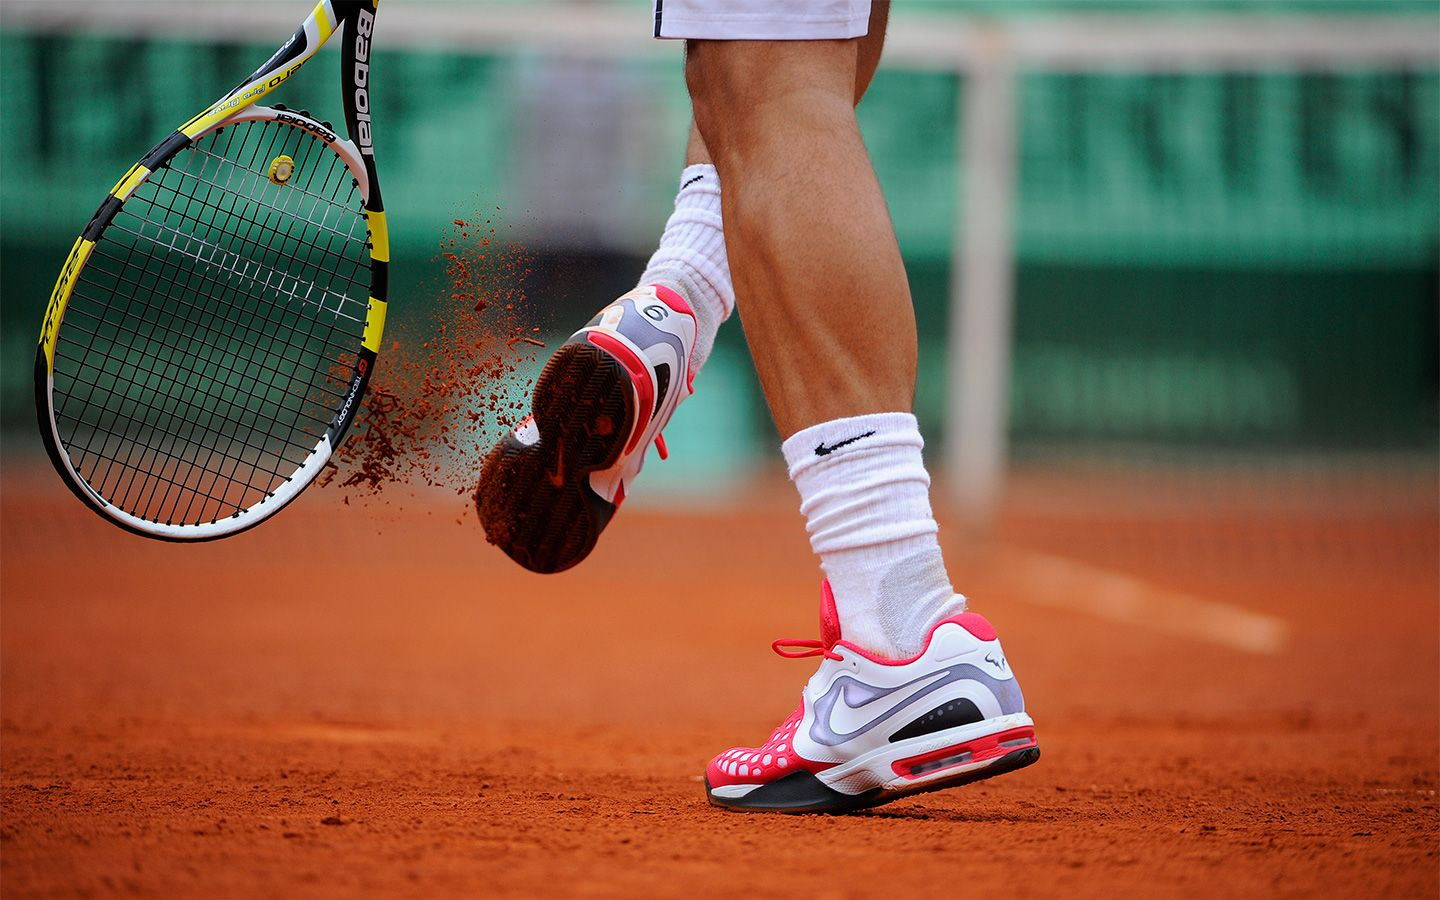 Rafael Nadal Gets The Clay Out Of His Shoes During His Match Against Nicolas Almagro Nadal Tennis Tennis Rafael Nadal